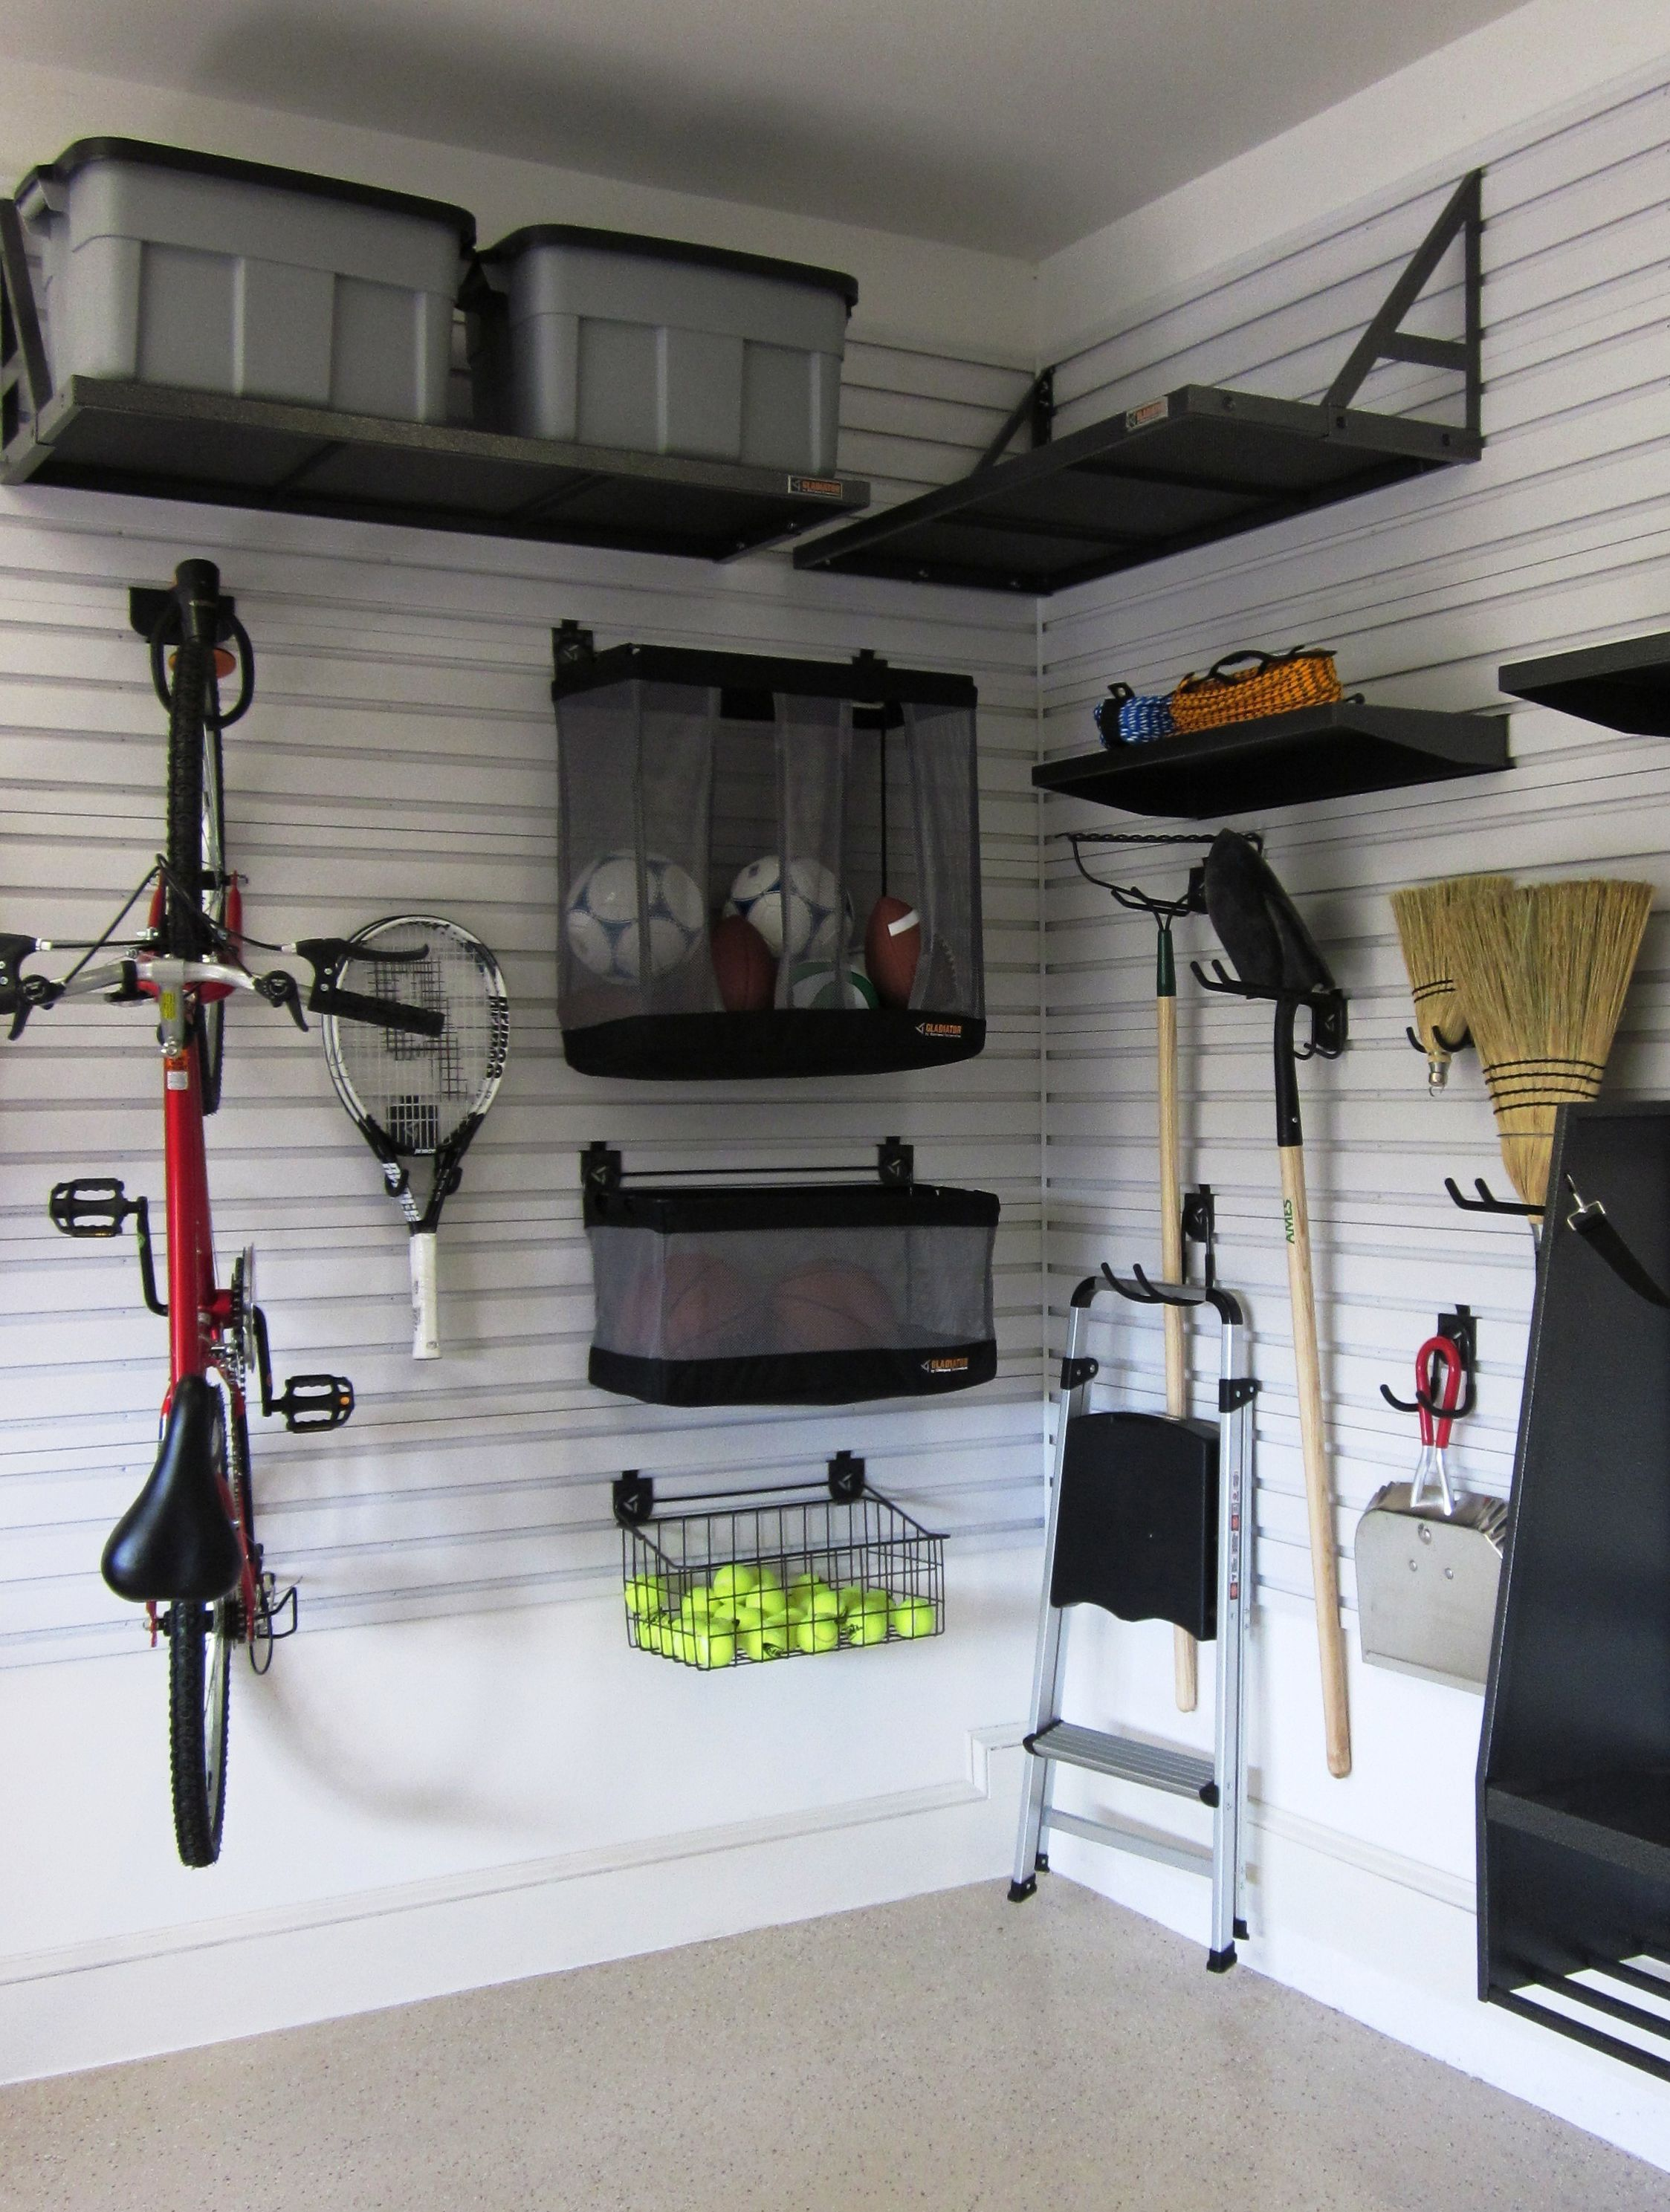 Now This Is A Cool Way To Organize Your Garage It Leaves Tons Of Space To Store Your C Gladiator Garage Storage Garage Storage Systems Garage Storage Cabinets